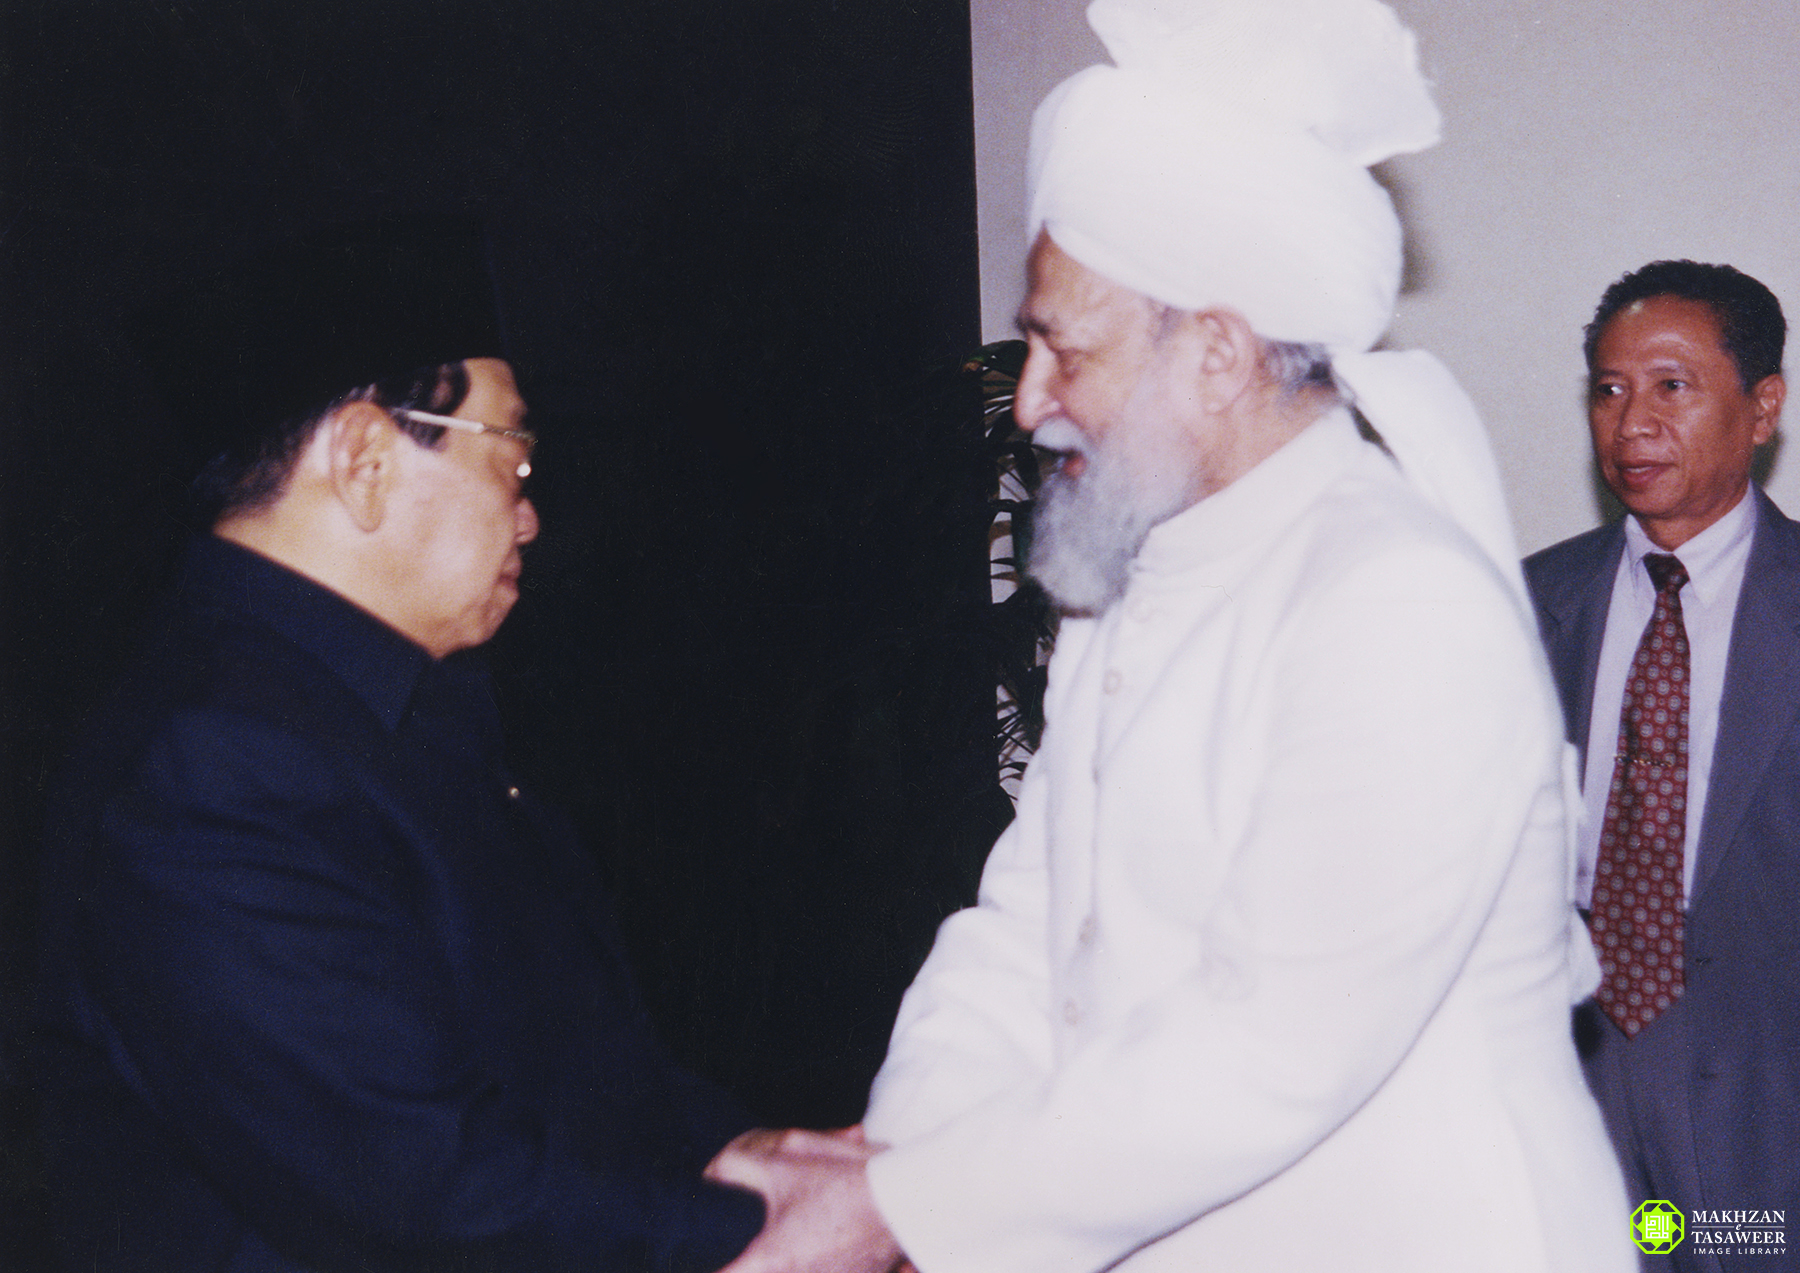 President Abdurrahman Wahid meeting KM4 28 June 2000 - New Naratif